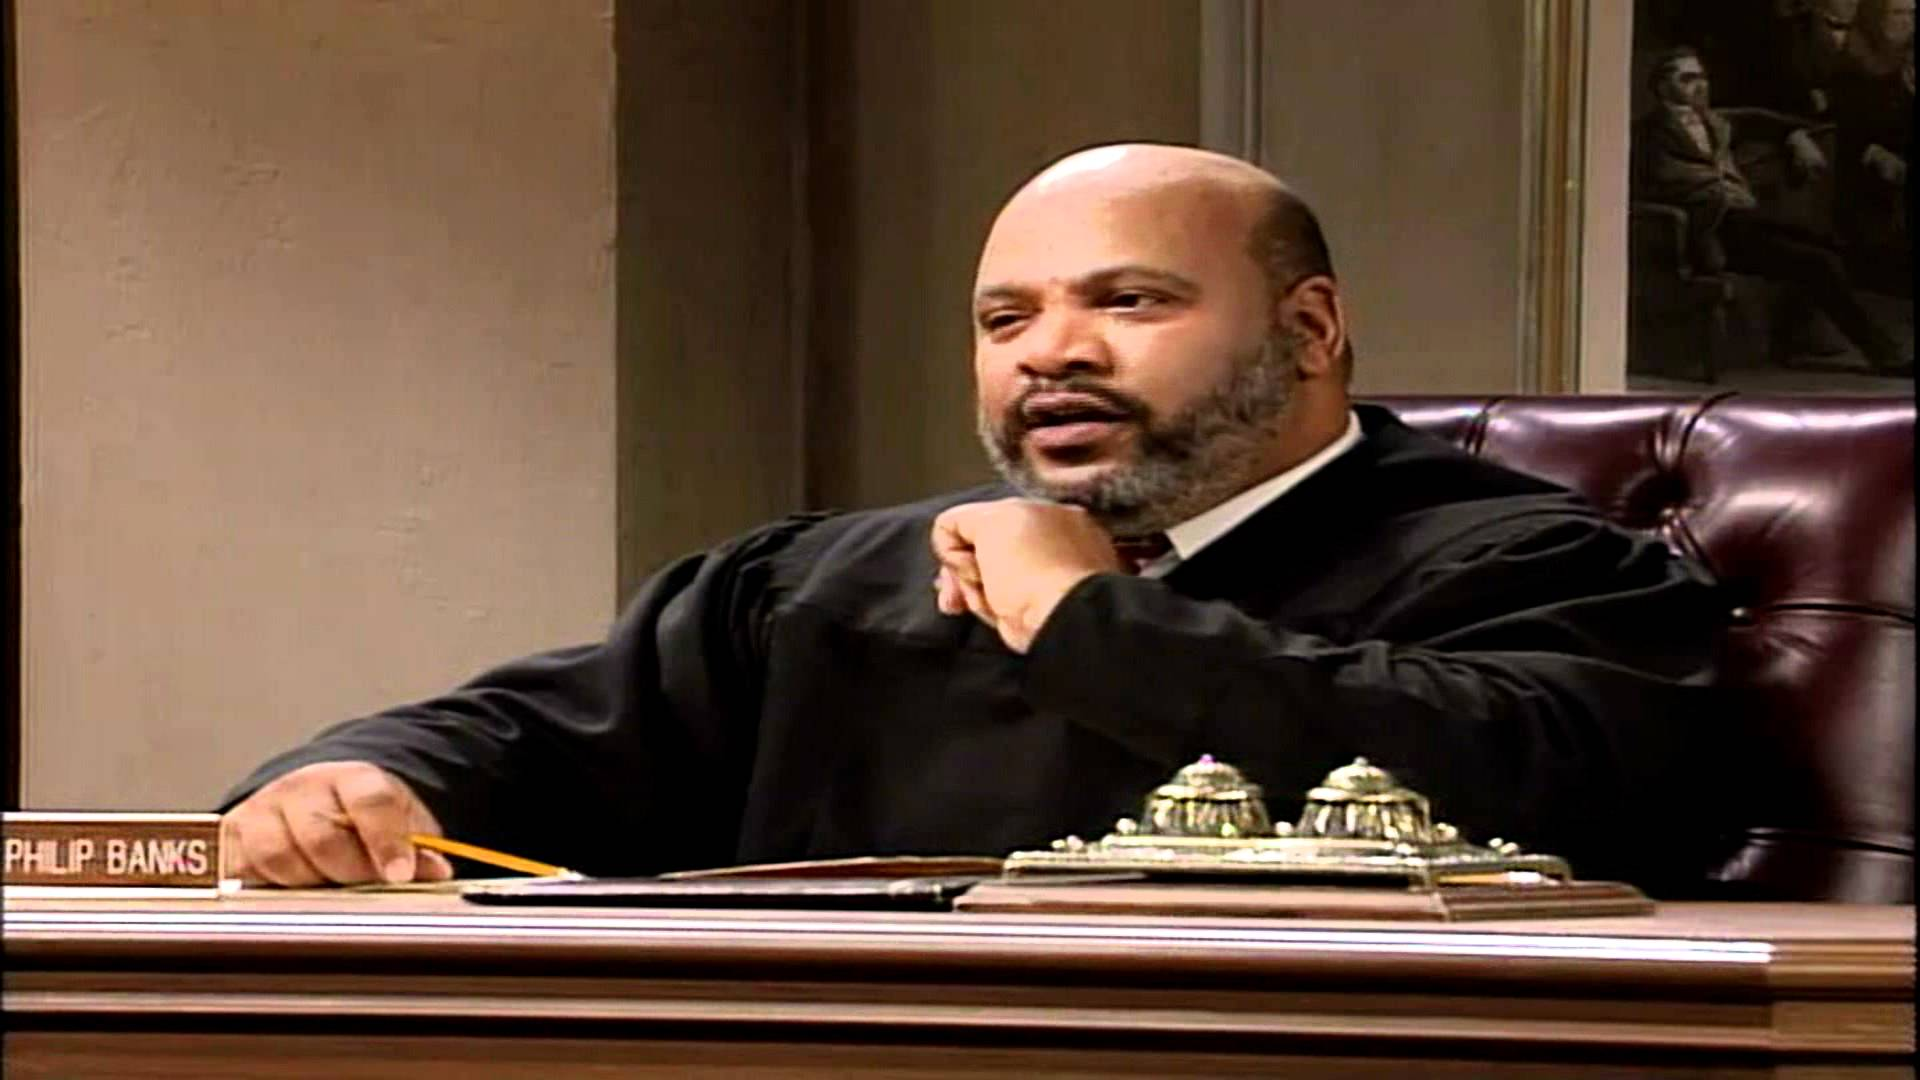 Image result for uncle phil picture judge